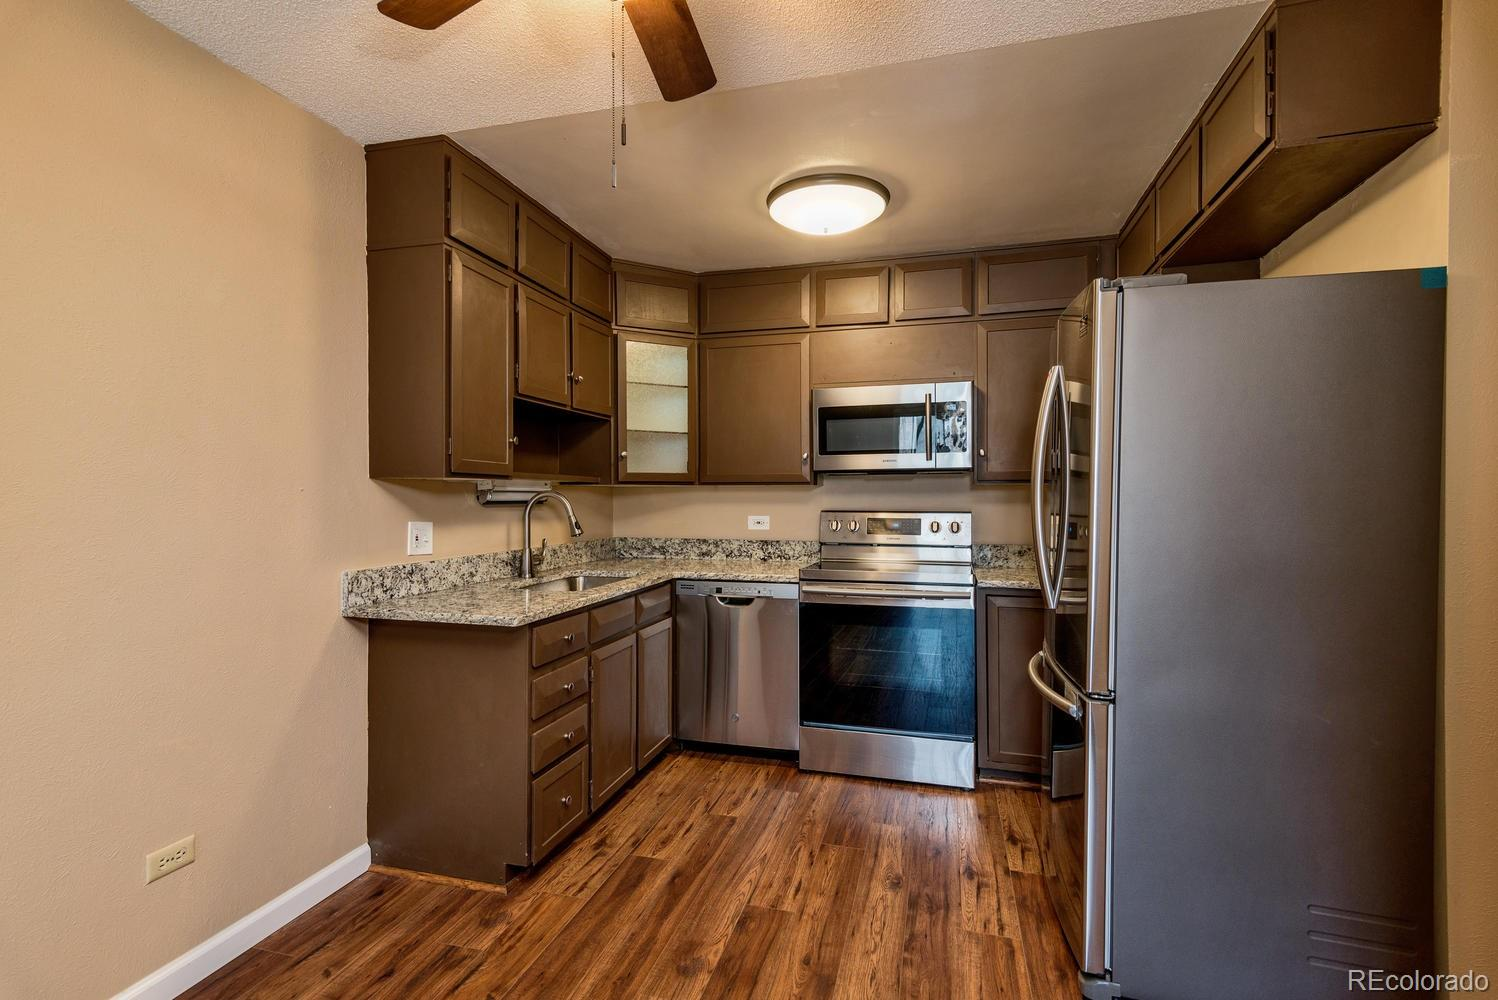 Spacious and updated, this condo is a must see!! *Tour Windsor Gardens Online: Community tour, explore amenities and features, check out examples of interior walking/narrated condo video tours, and more:  go to www.tourwindsorgardens.com * Move right in and enjoy this 1380 sf condo in much desired and beautifully maintained Windsor Gardens !!  This condo features 2 bedrooms, 2 bathrooms, plus a bonus den! 1 car underground parking space included!!! Additional underground garage available for purchase. Great location steps to clubhouse and all the amenities this community has to offer. Kitchen features granite slab countertops, new stainless steel appliances included! Bathrooms with new sinks, faucets and granite slab counters. Laminate wood floors throughout main area- kitchen, entry, and den. Newer neutral paint tones throughout. New Carpet in bedrooms! Master features en-suite 3/4 bathroom, and a large walk-in closet. 3 wall a/c units. Lanai features water resistant laminate flooring, glass/screen enclosure, and 2 vinyl slider doors. Bonus storage room on same floor. Colorado's largest active adult living community, age 55+. FHA/VA approved. HOA Dues include annual property taxes! And also heat, water, sewer, trash, 24-hour patrolling community responders, club house w/indoor & outdoor pool, hot tub, sauna, activities...9 hole par 3 golf course open to the public.